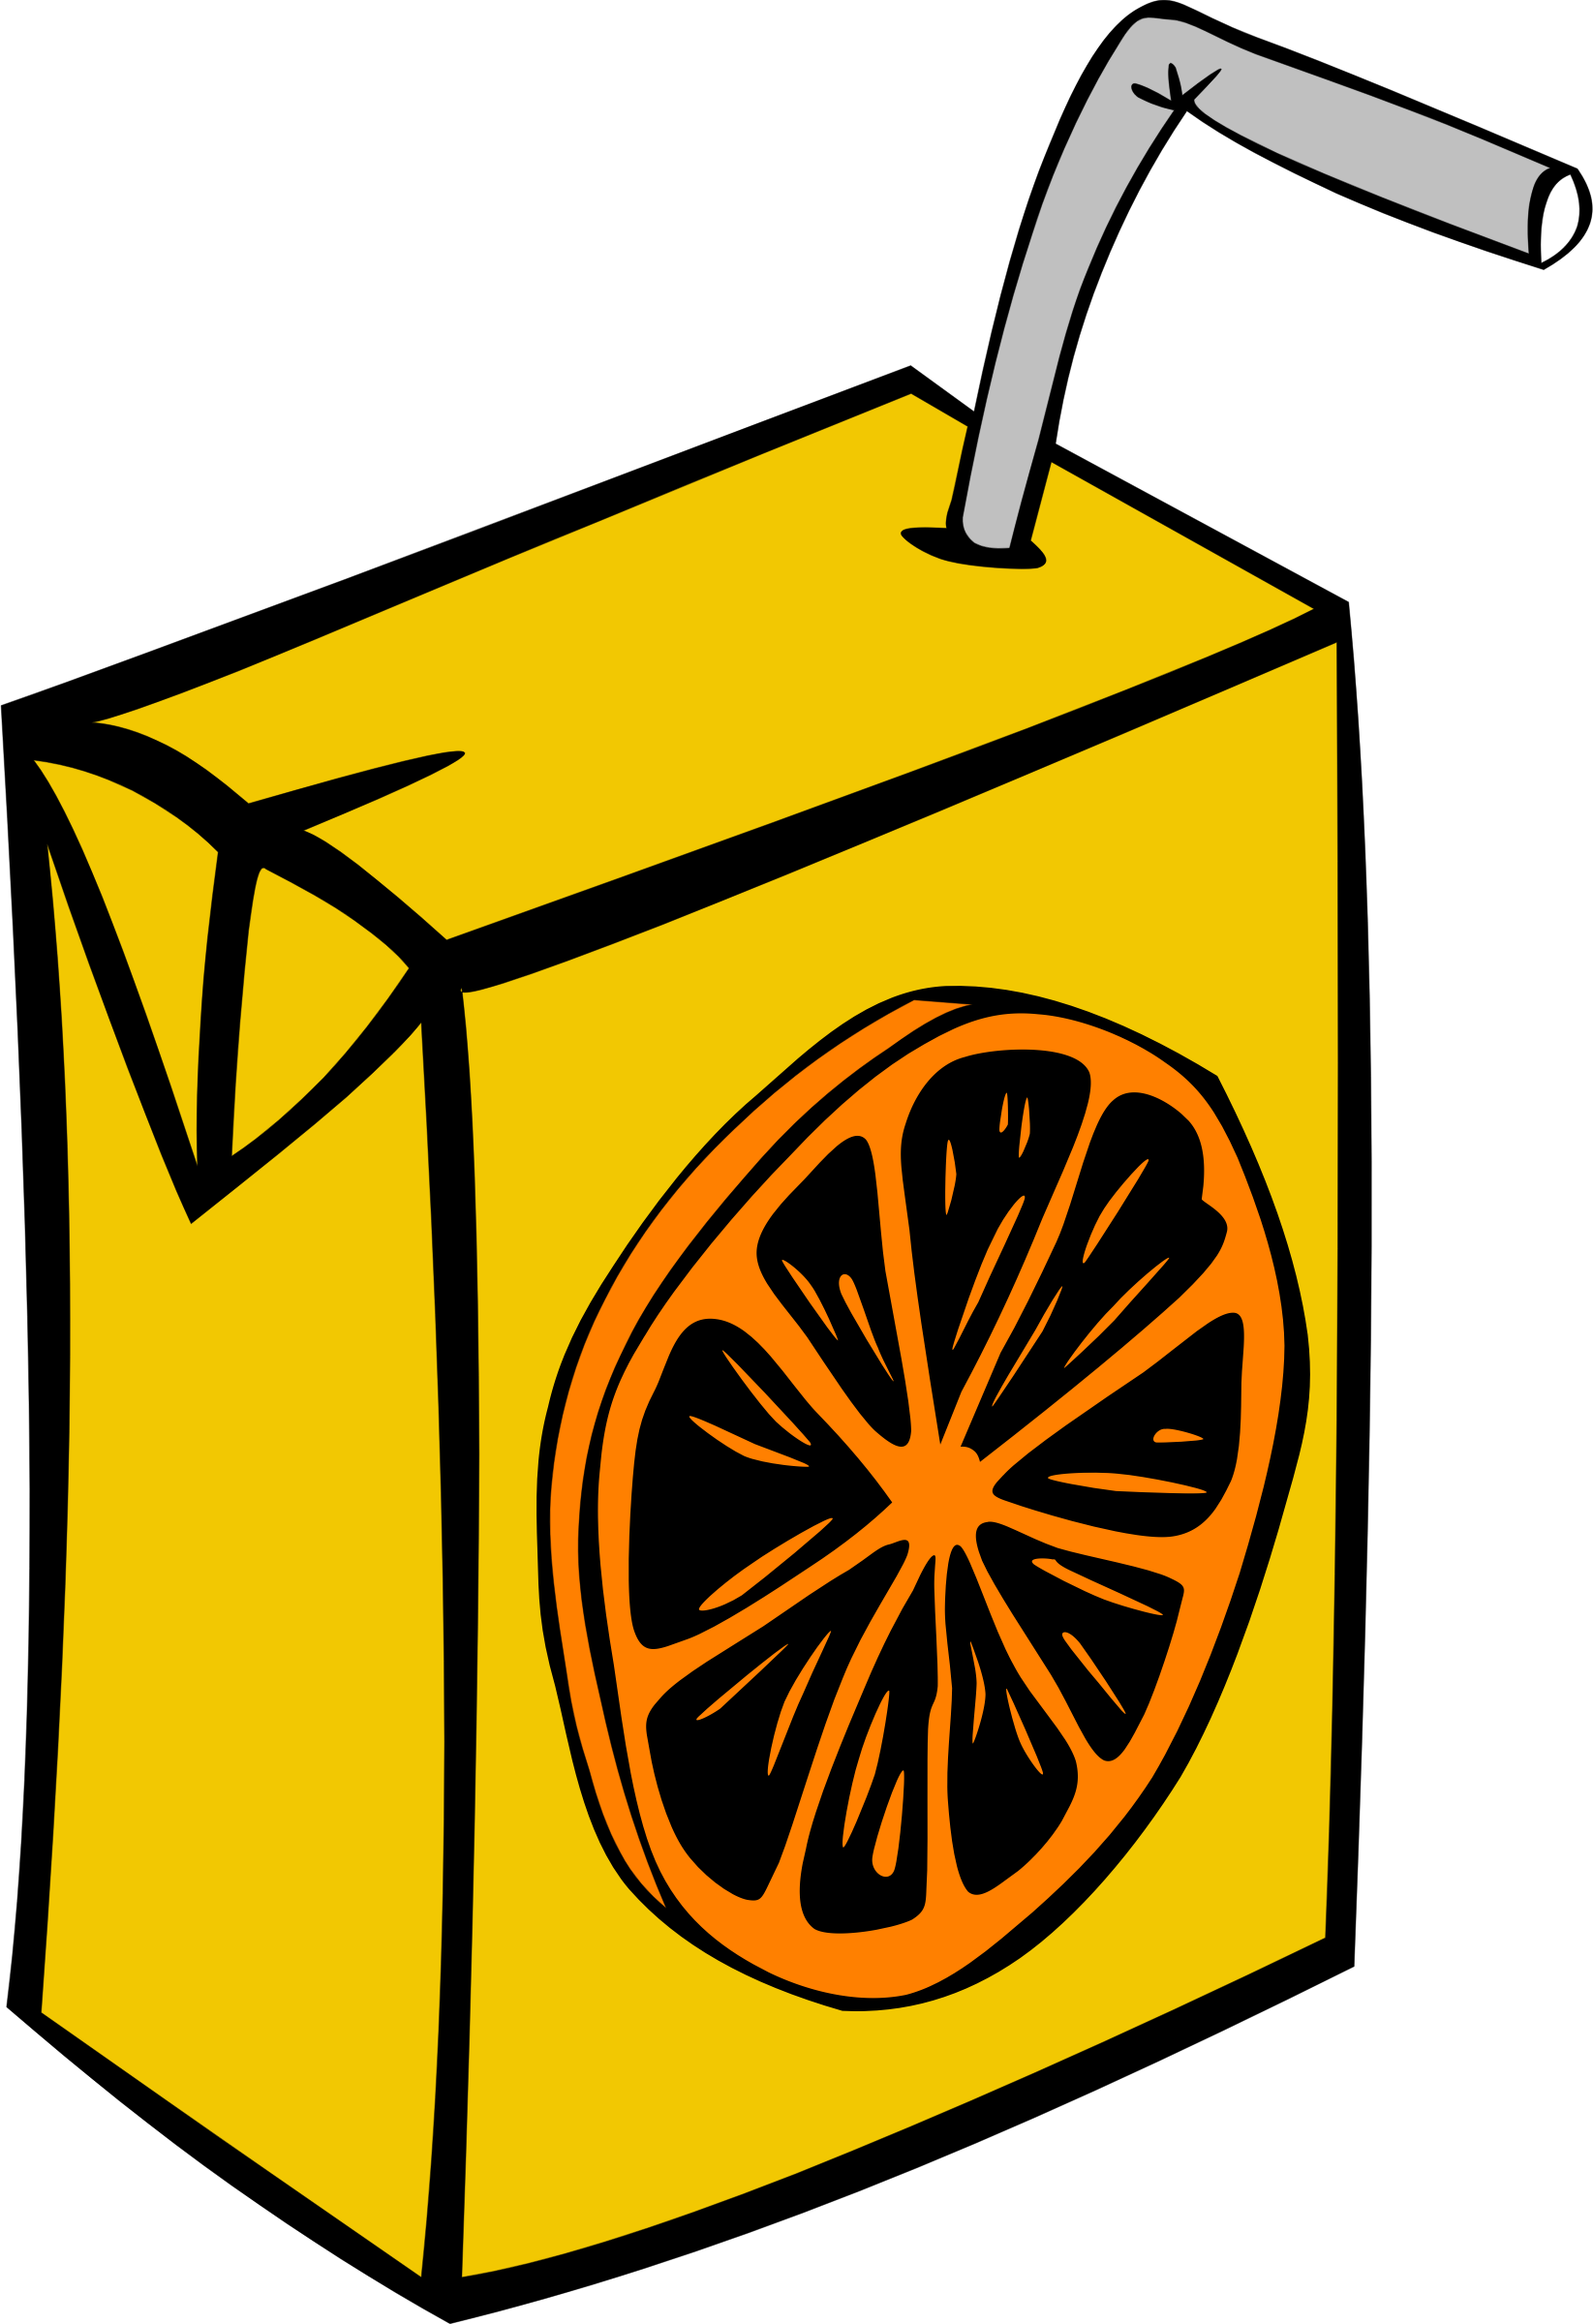 image library library Fast food juice orange. Drinks clipart.